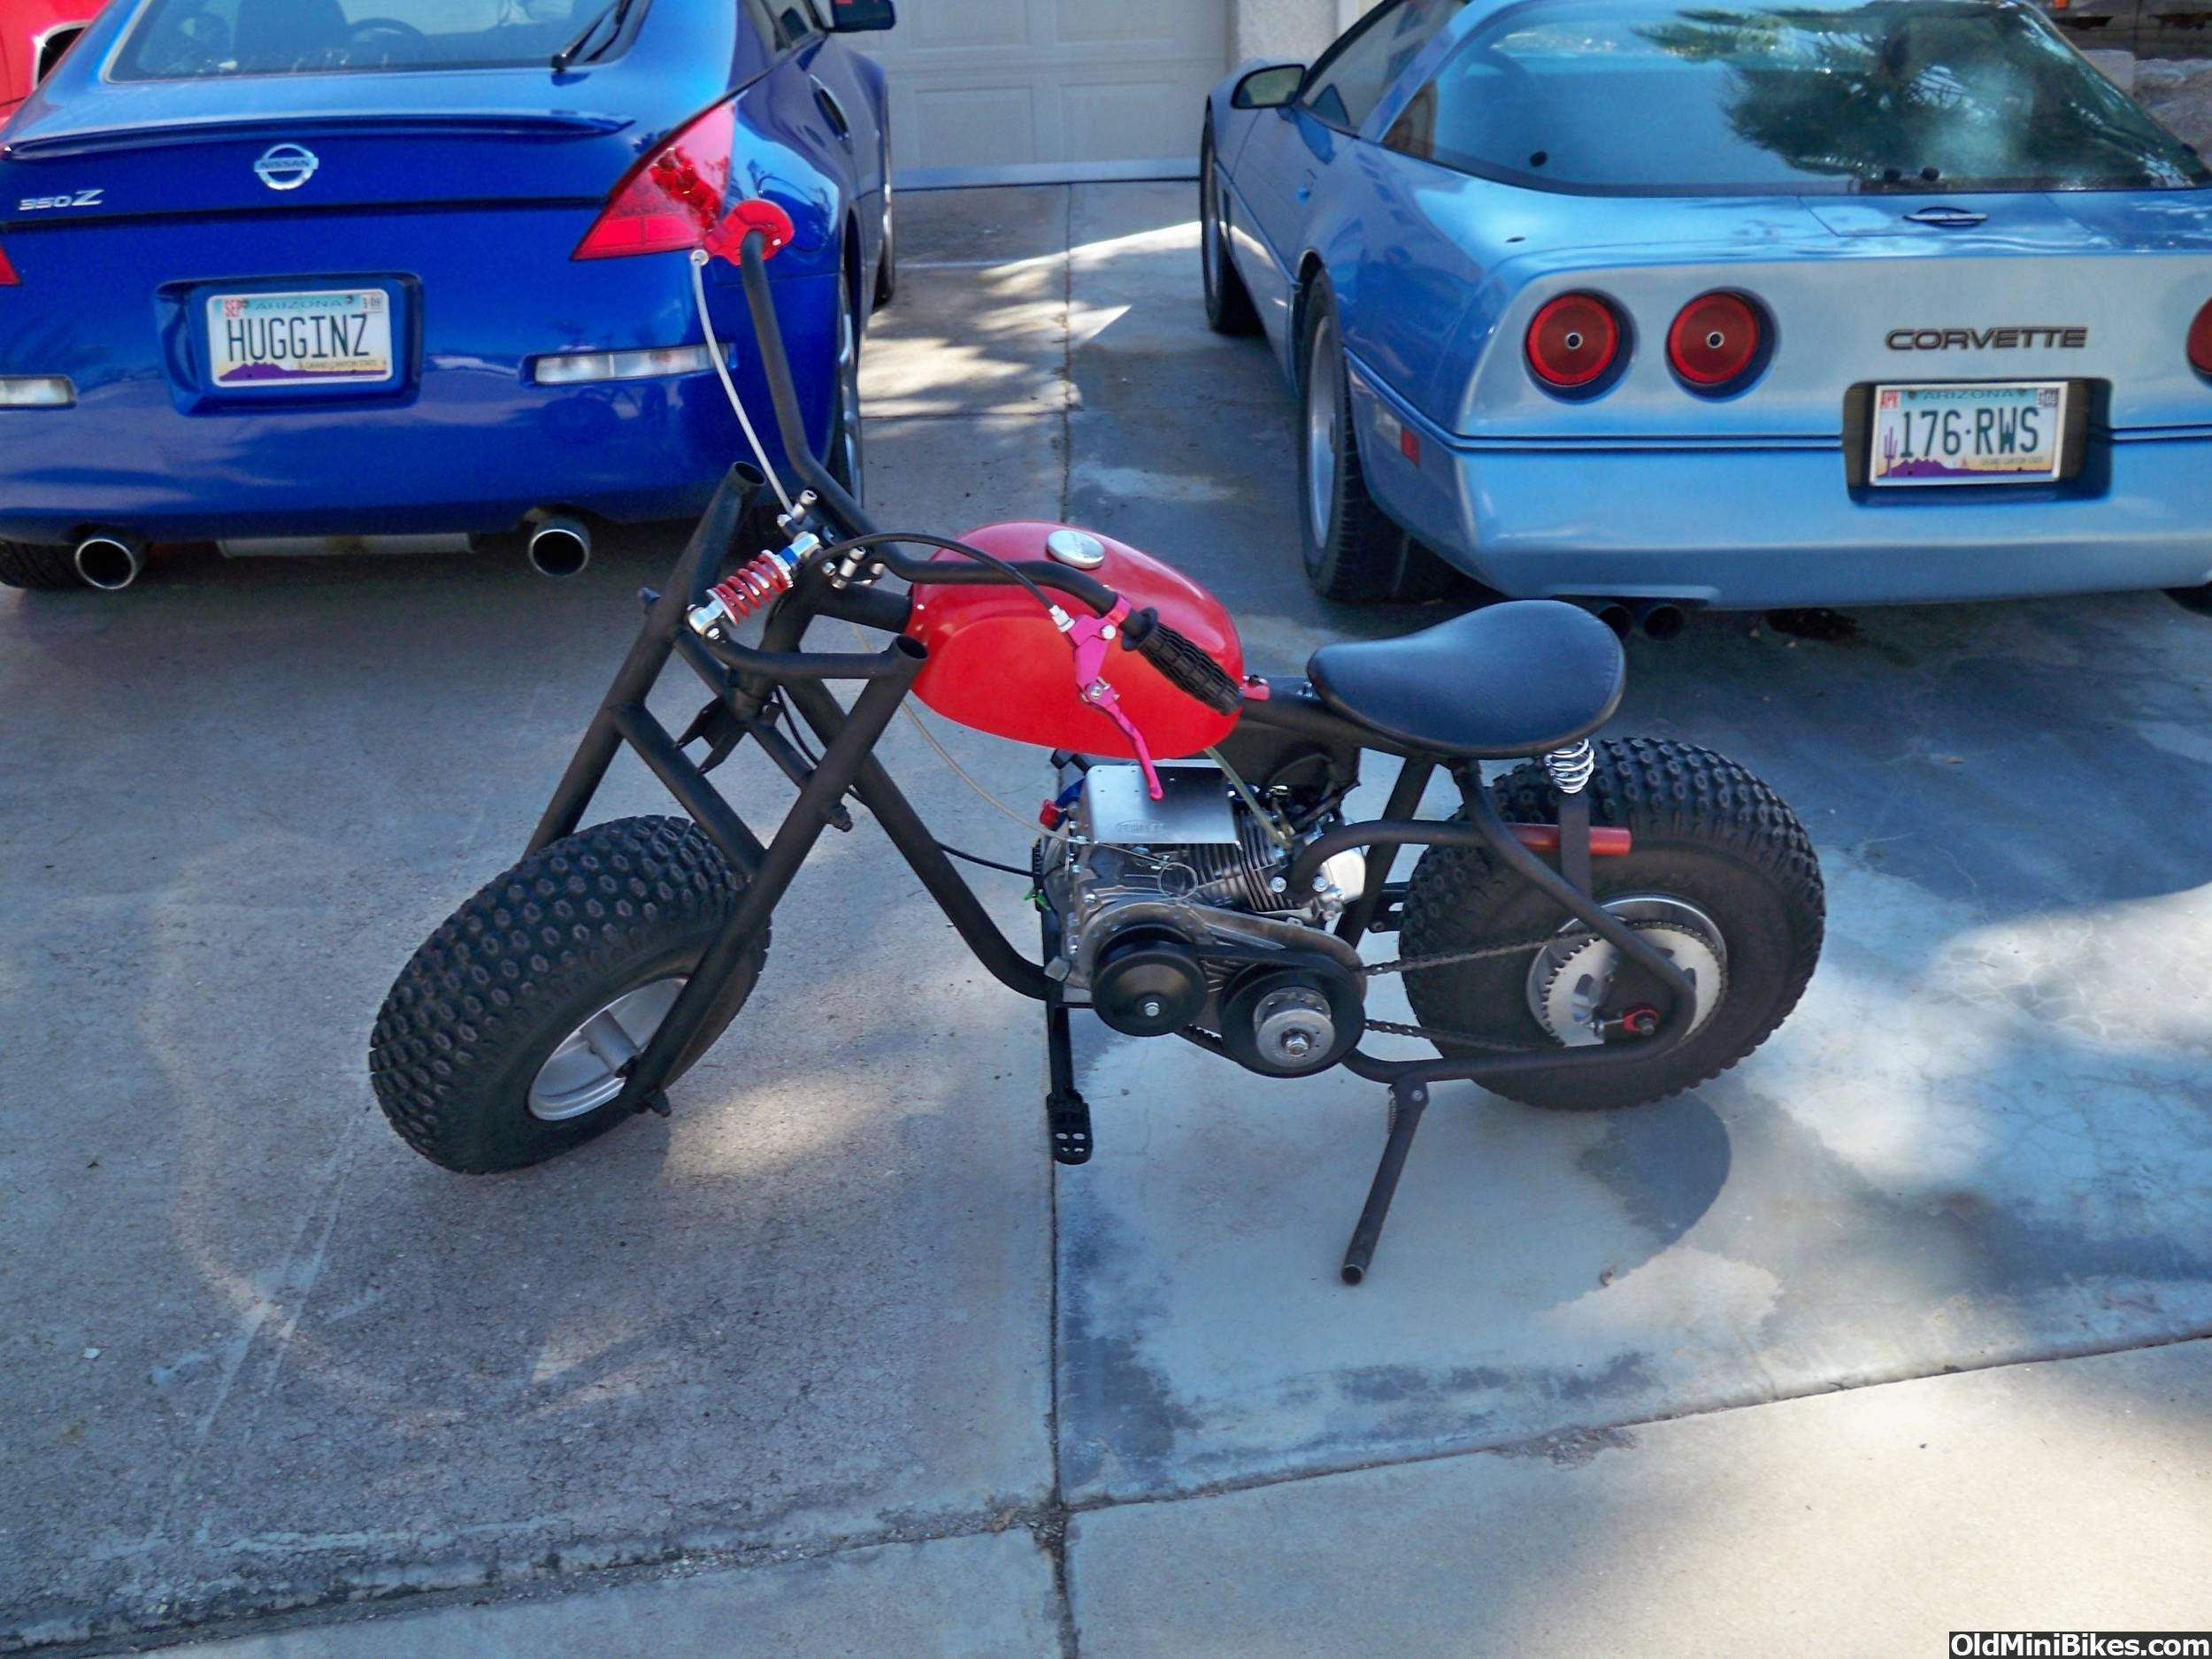 Baja warrior wanted - any condition - OldMiniBikes.com Forum | Baja ...